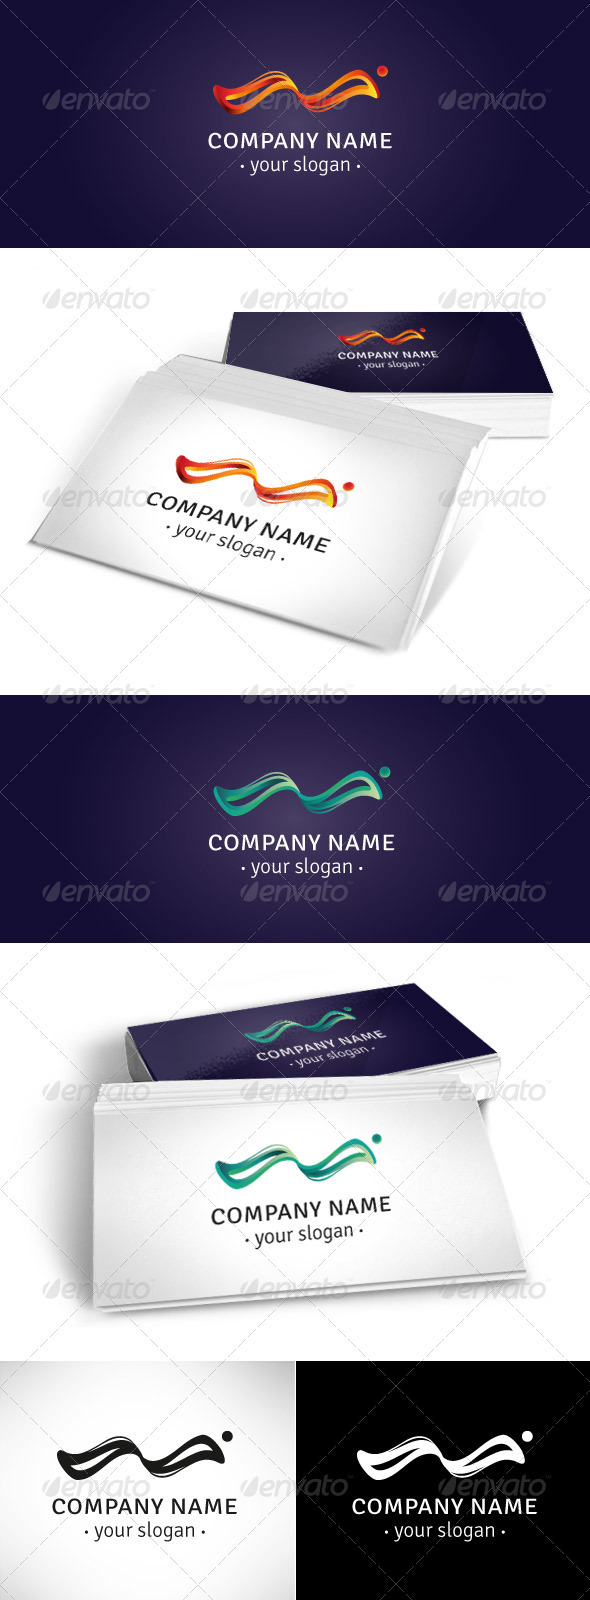 Wave Logo Template - Vector Abstract